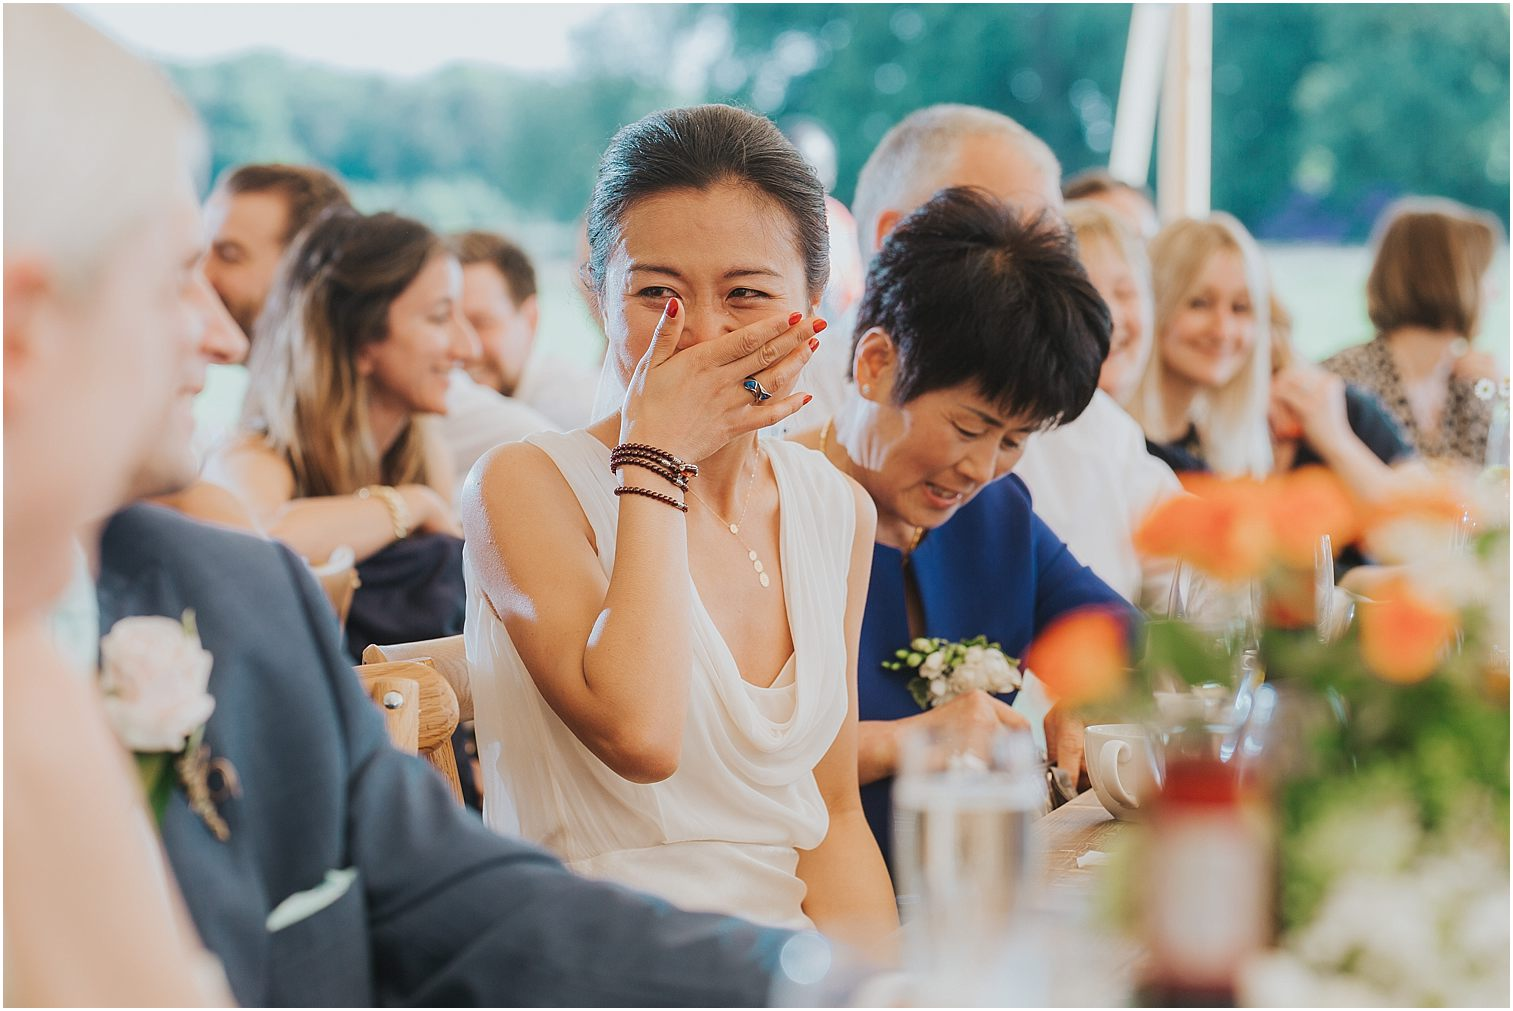 Bride reacting to her Groom's speech